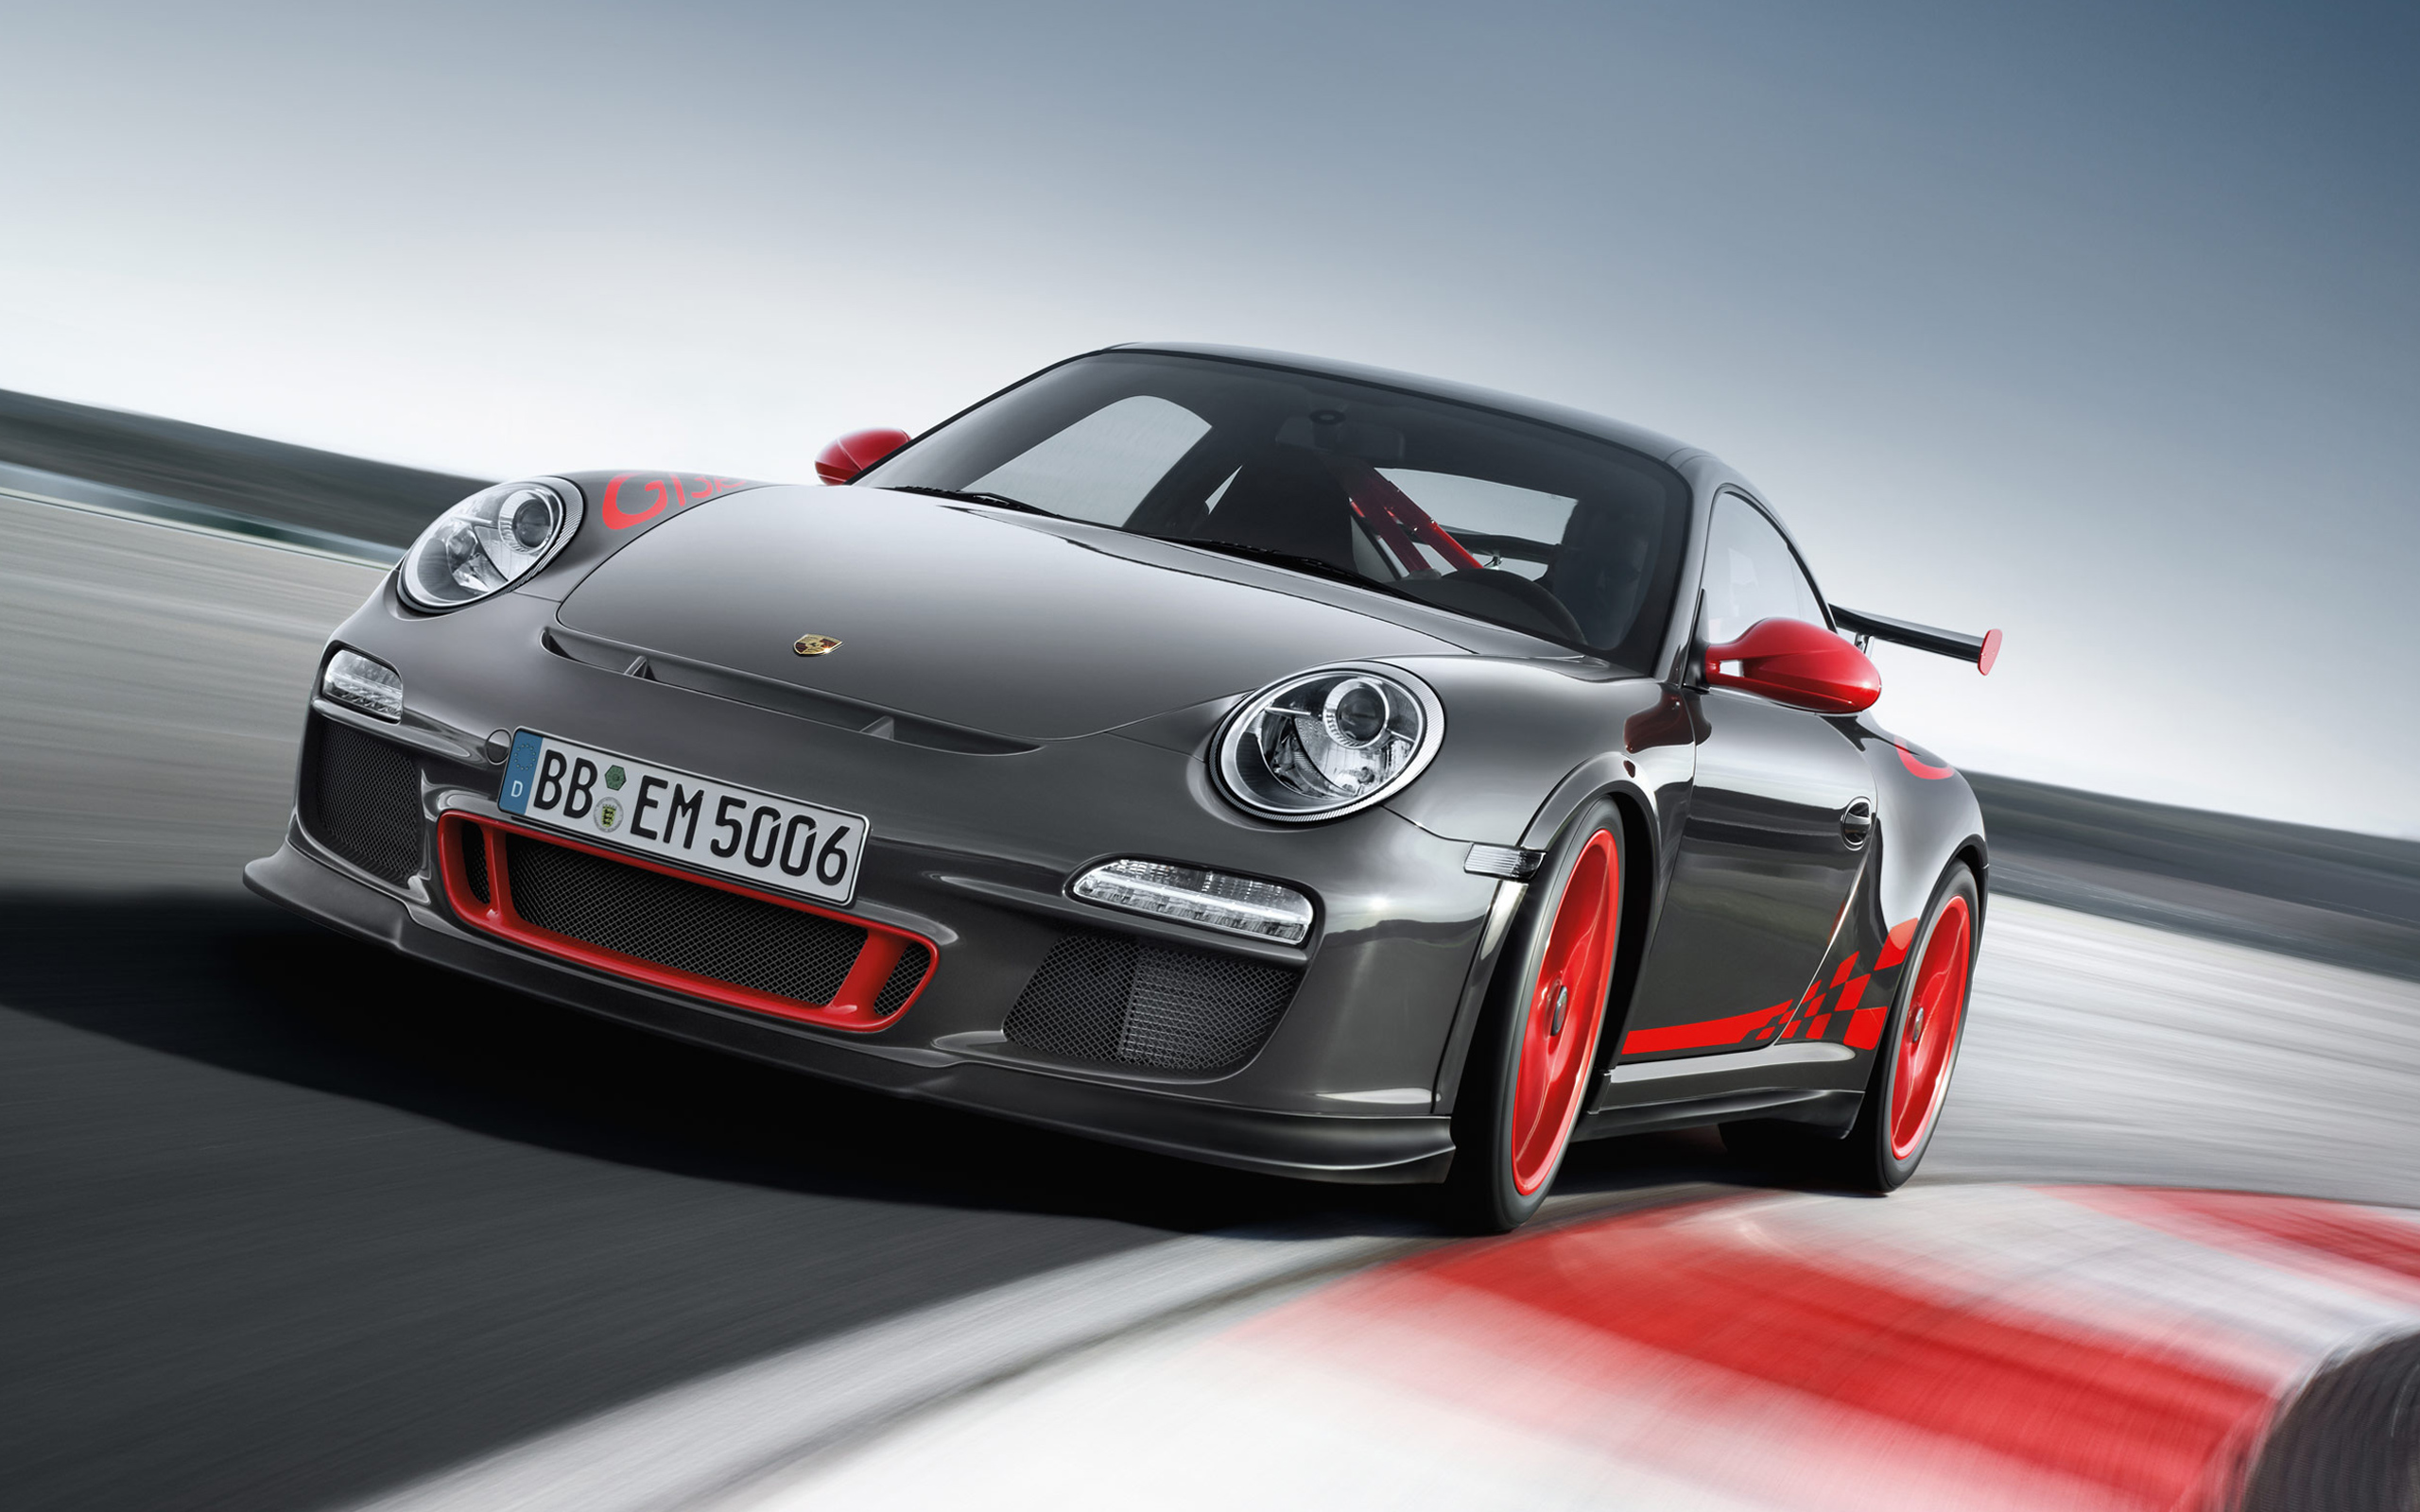 Porsche 911 GT3 RS 2012 Wallpapers HD Wallpapers 2560x1600